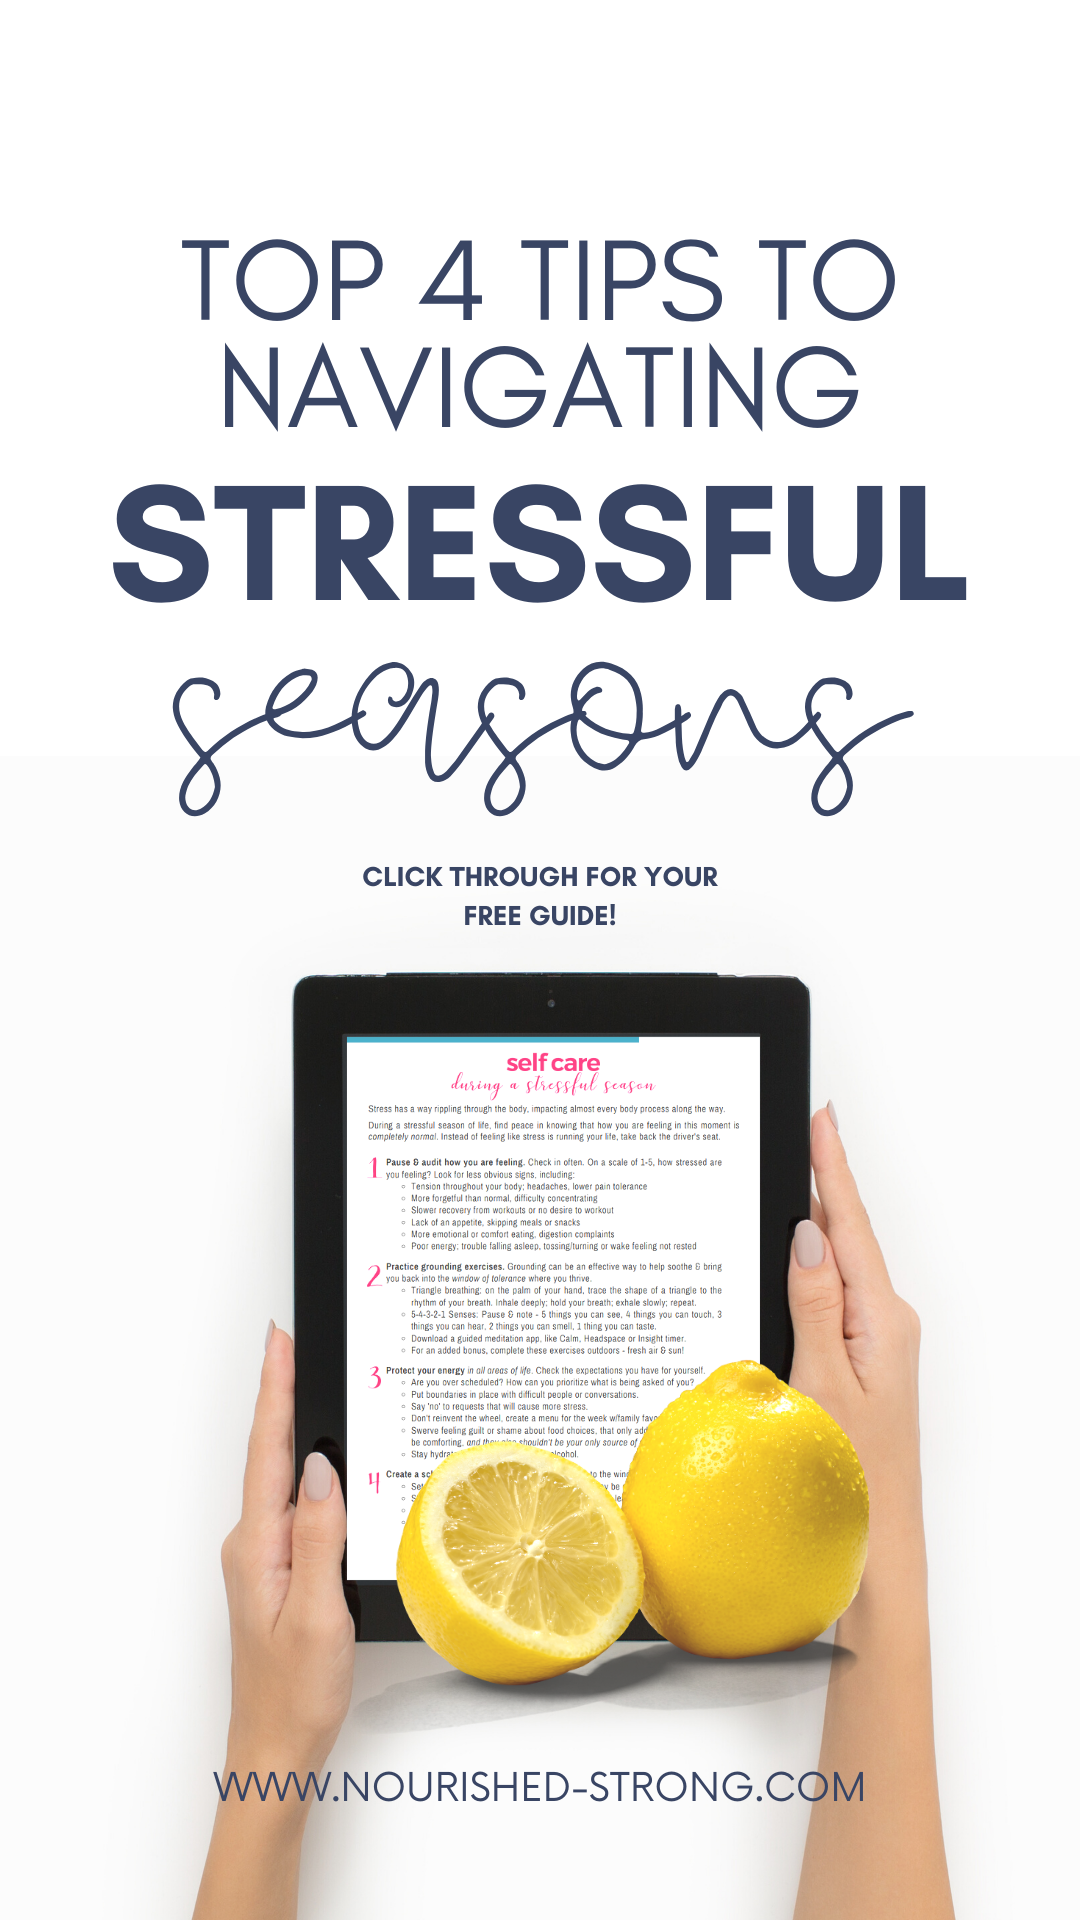 Pin on Nourished + Strong Blog Posts